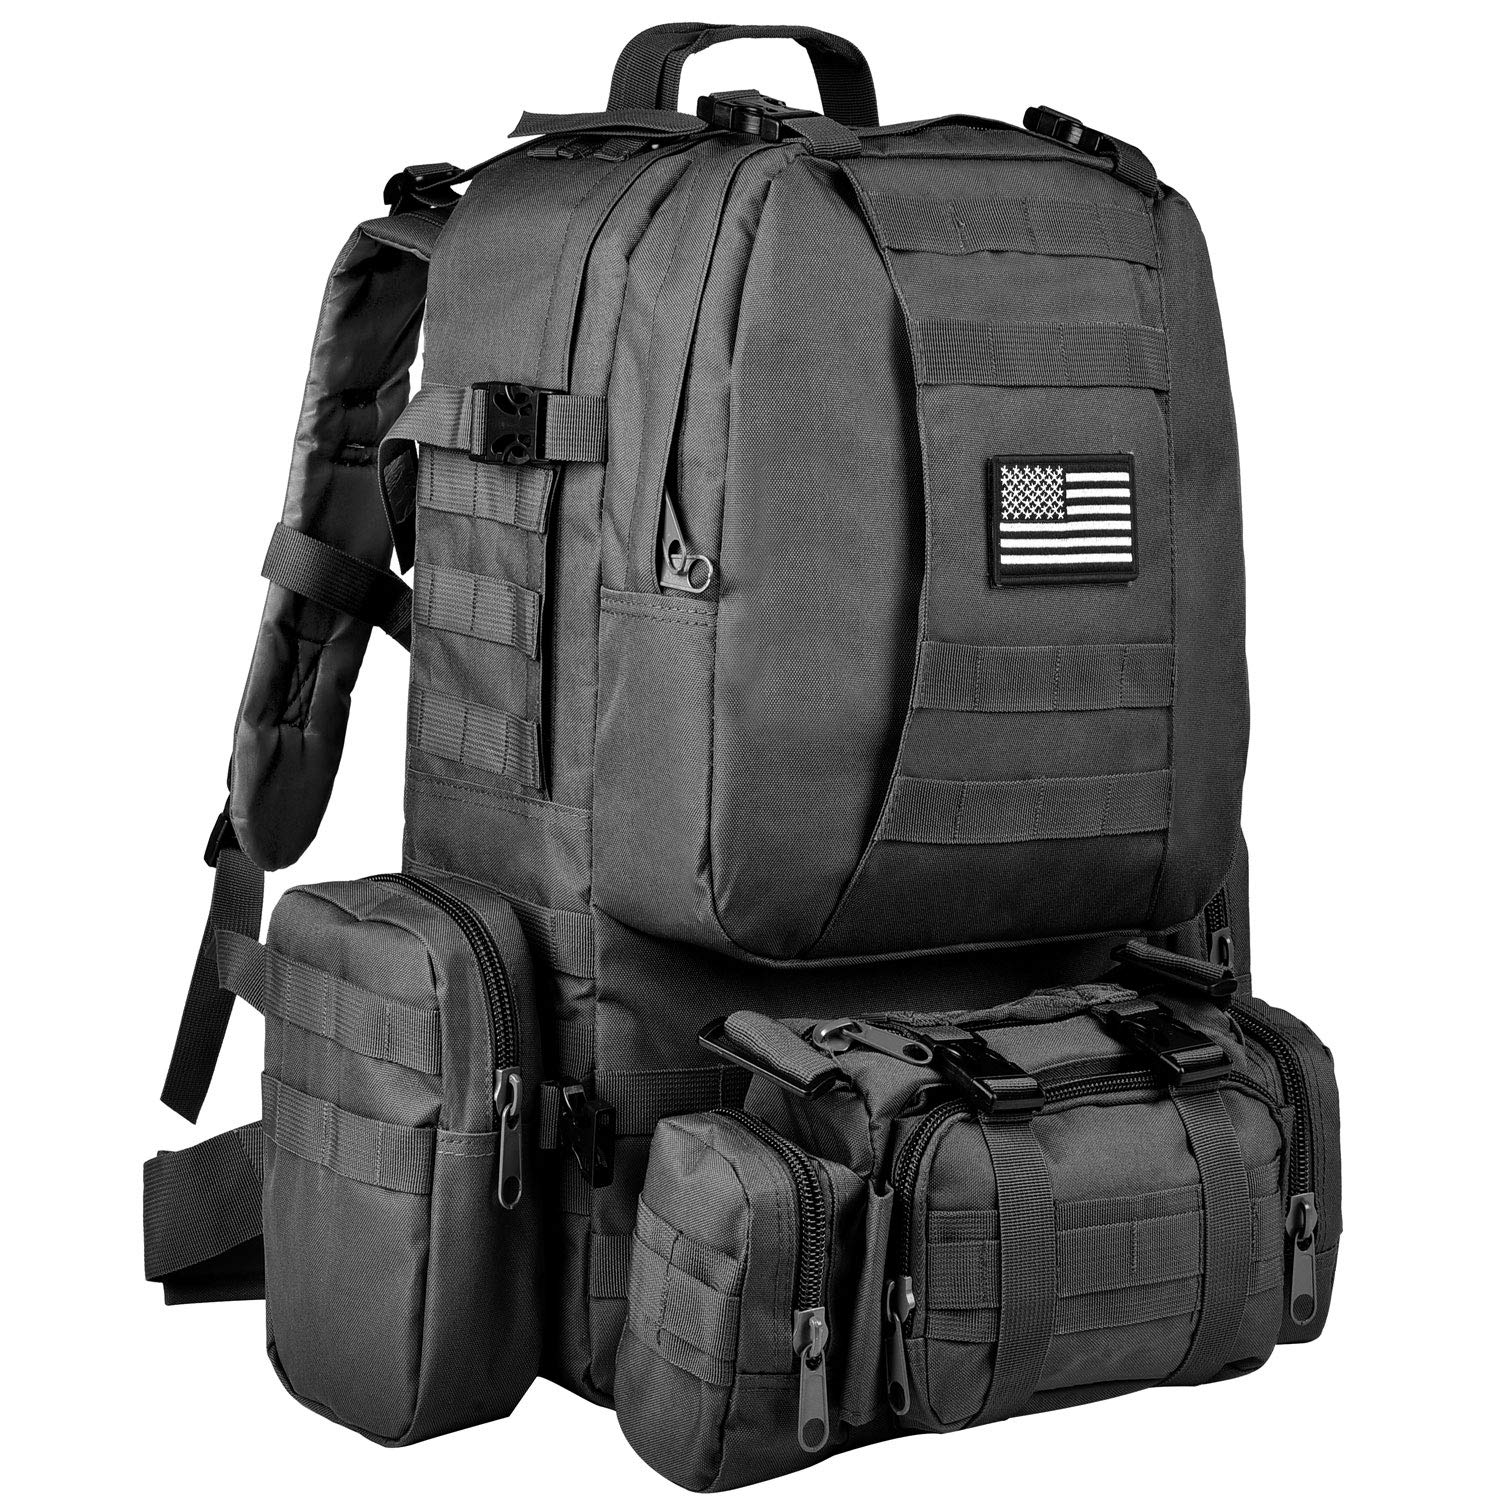 Review of - CVLIFE Outdoor 60L Built-up Military Tactical Backpack Army Rucksacks 3 Day Assault Pack